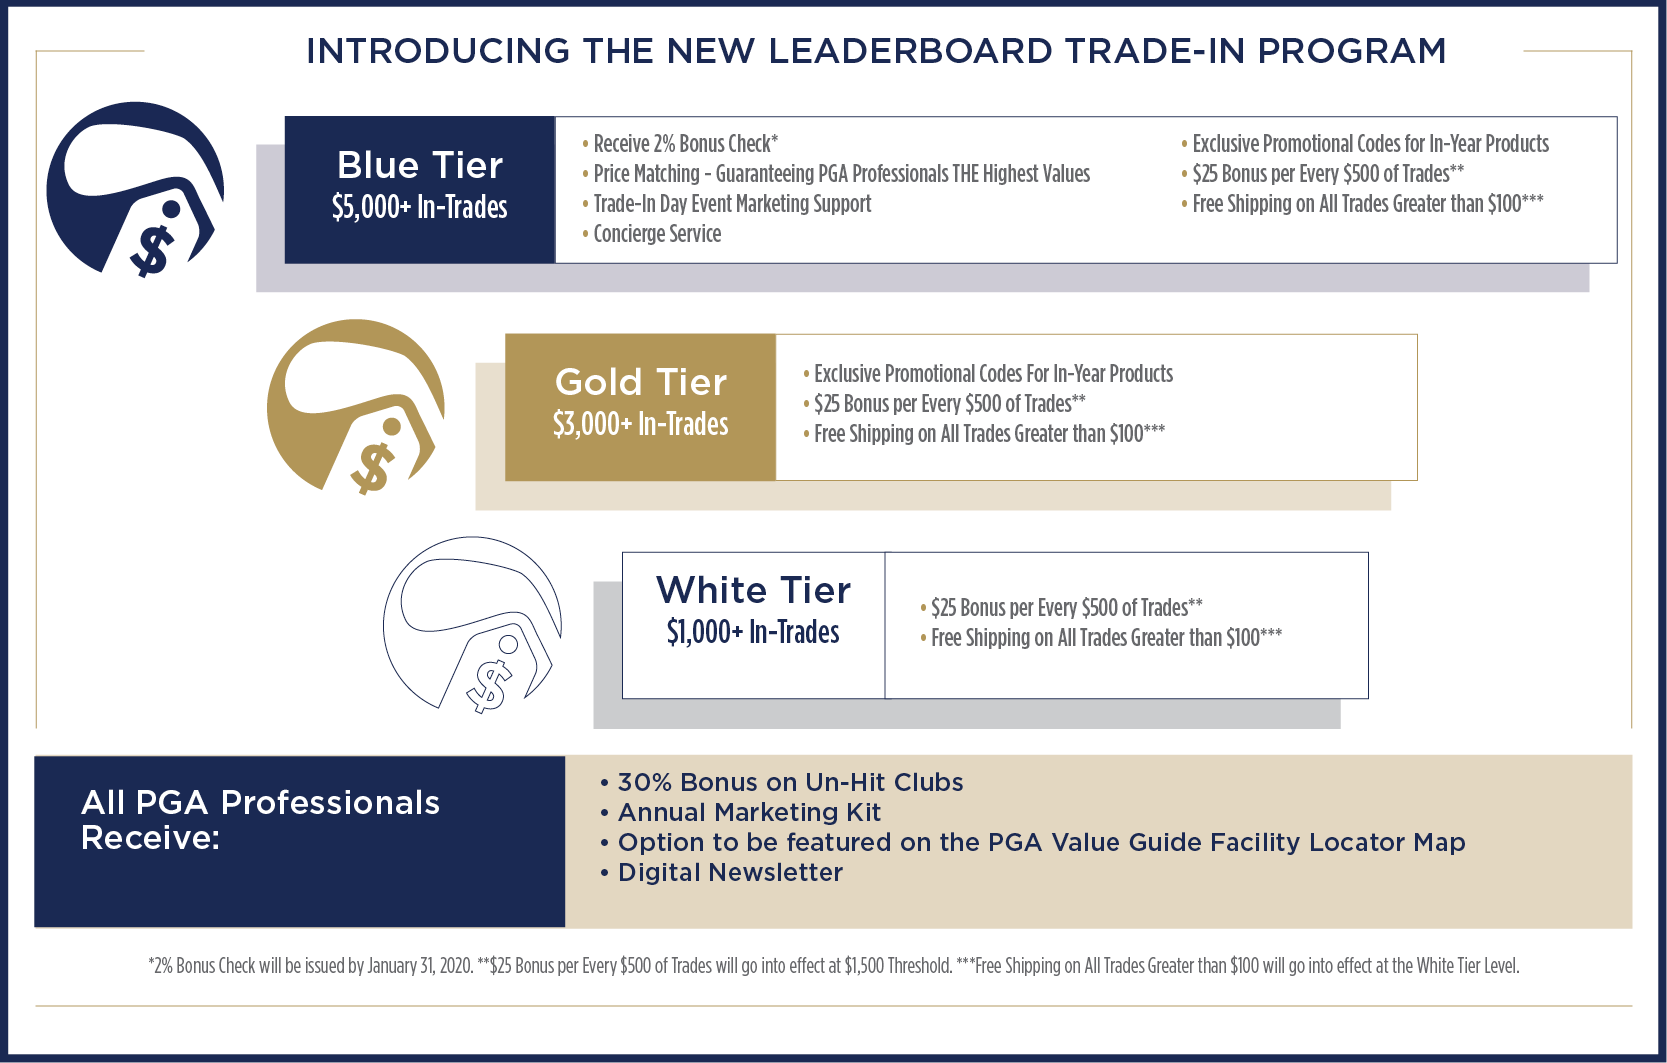 Leaderboard Trade-In Program Infographic